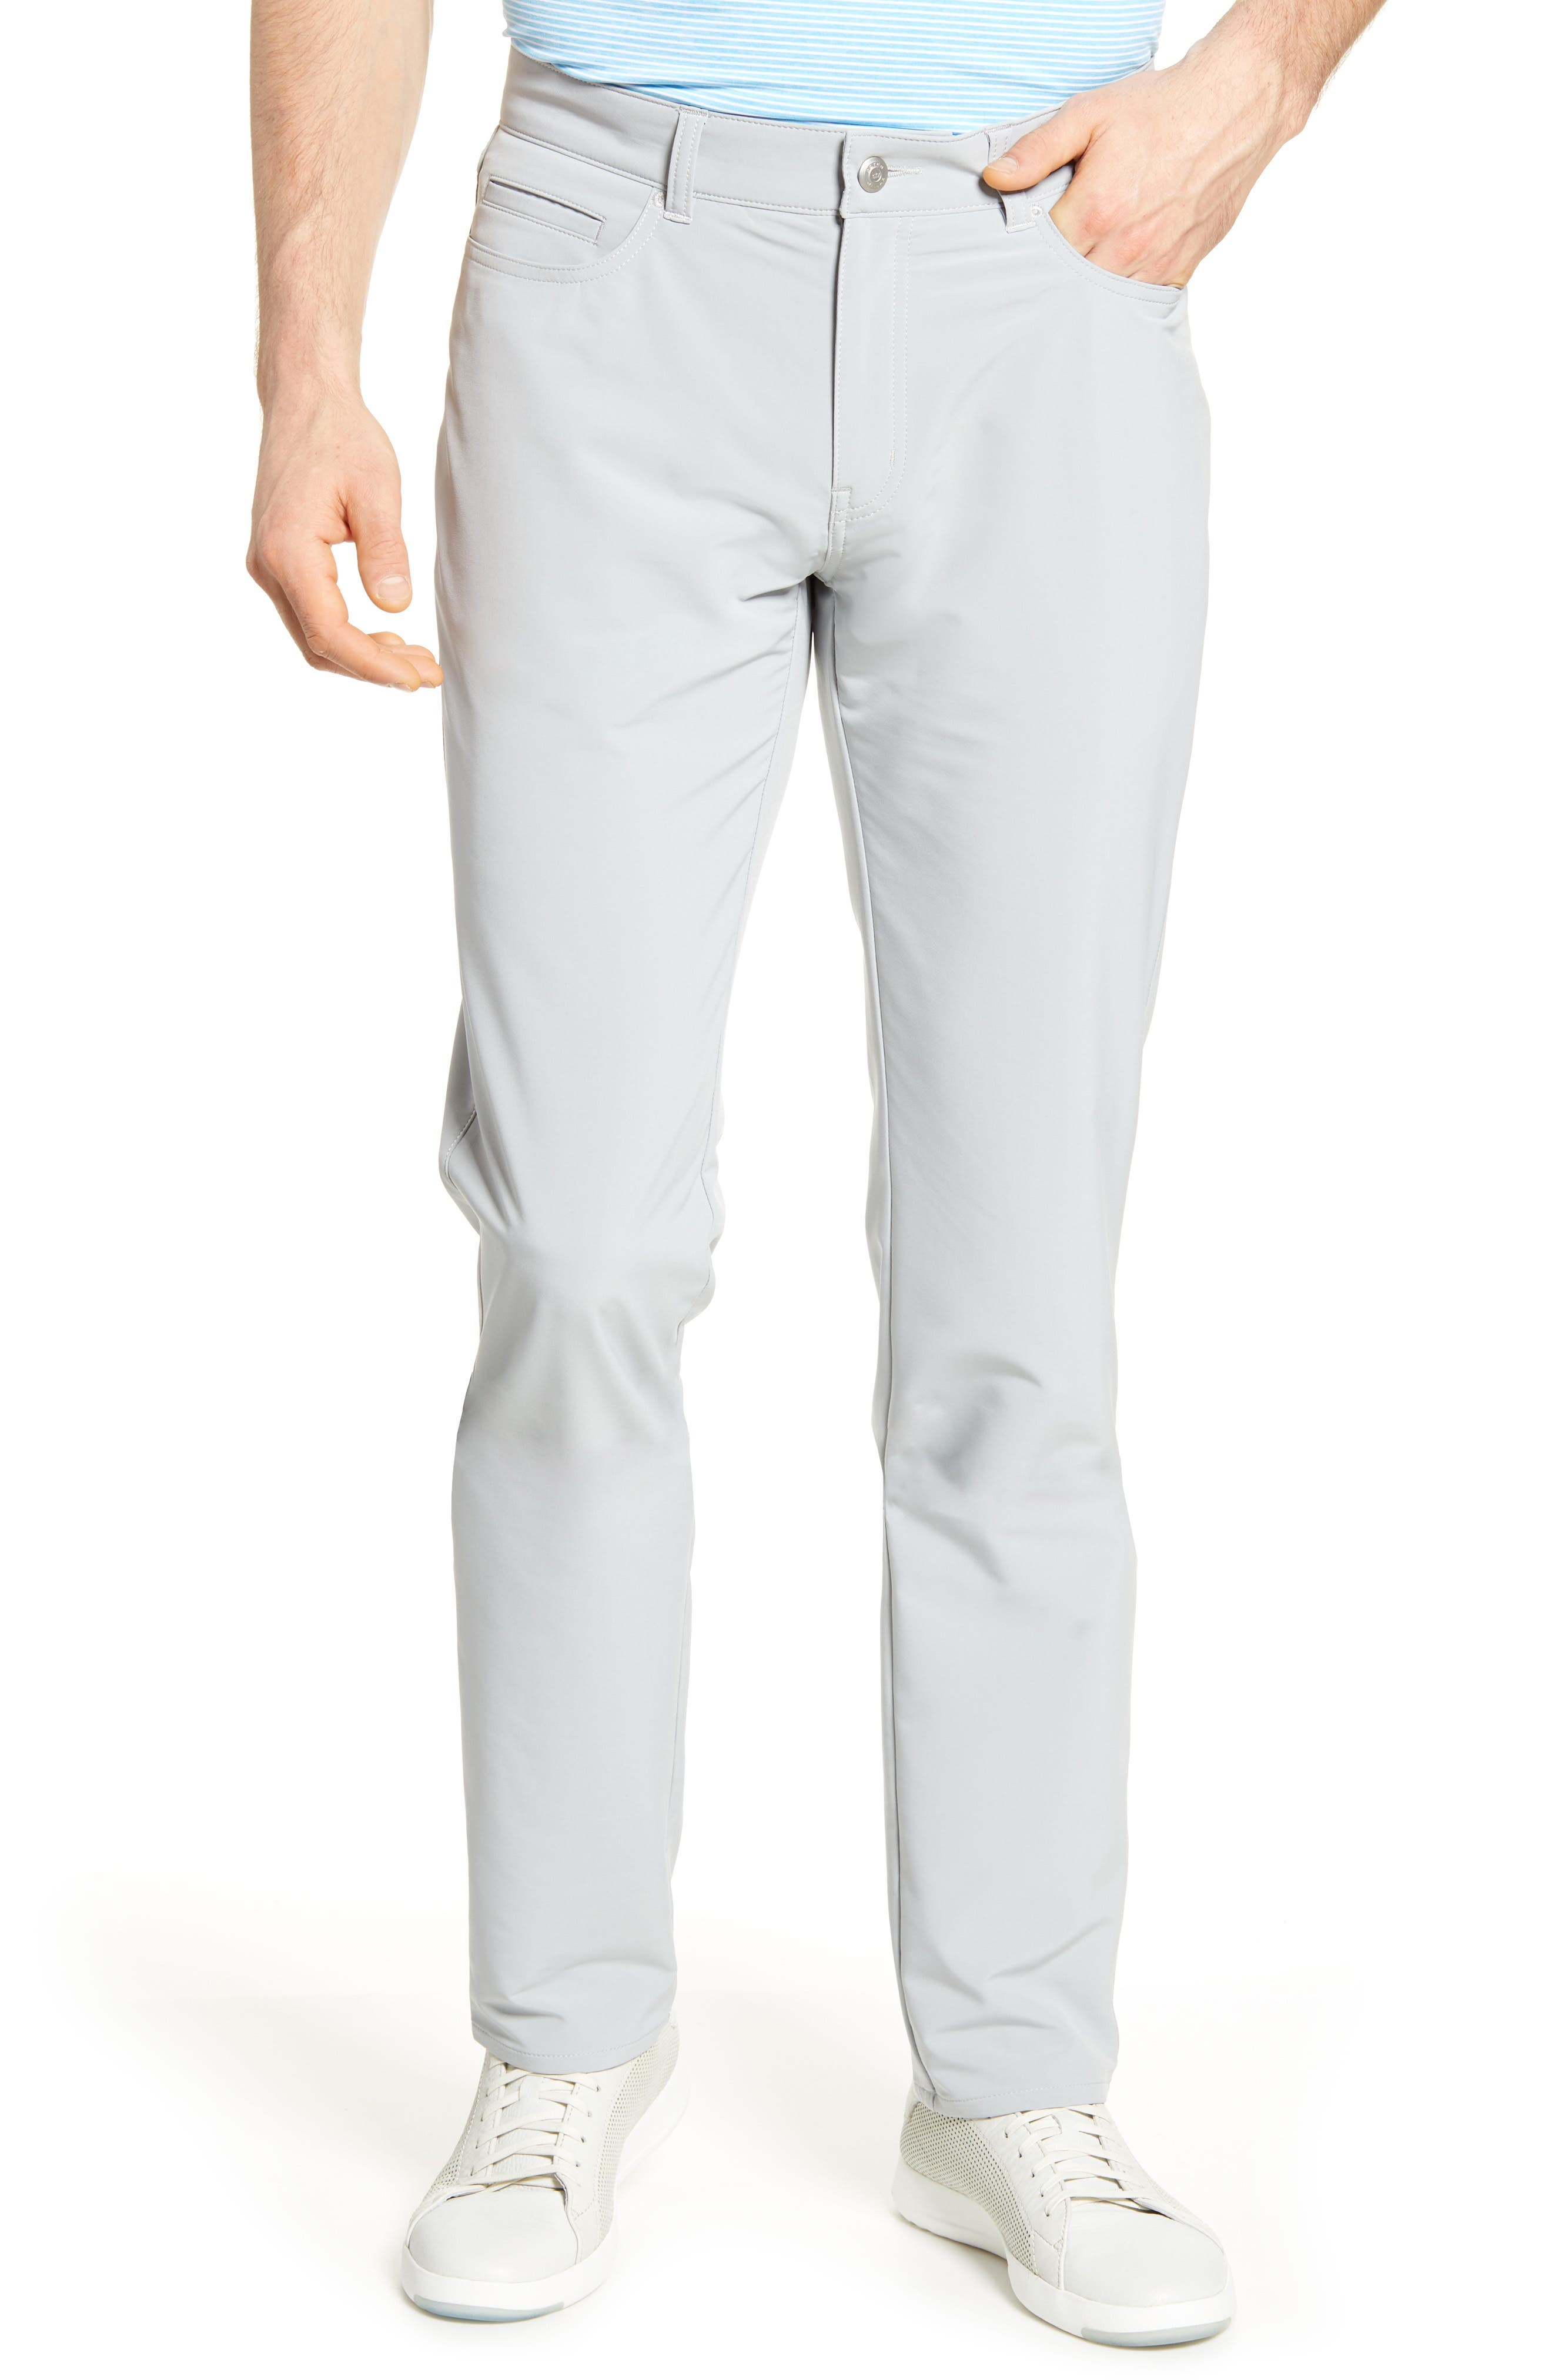 Achieve work-to-play perfection in these double-weave pants styled with movable stretch and slim legs. Style Name: Peter Millar Double Weave Stretch Trousers. Style Number: 6001272 2. Available in stores.